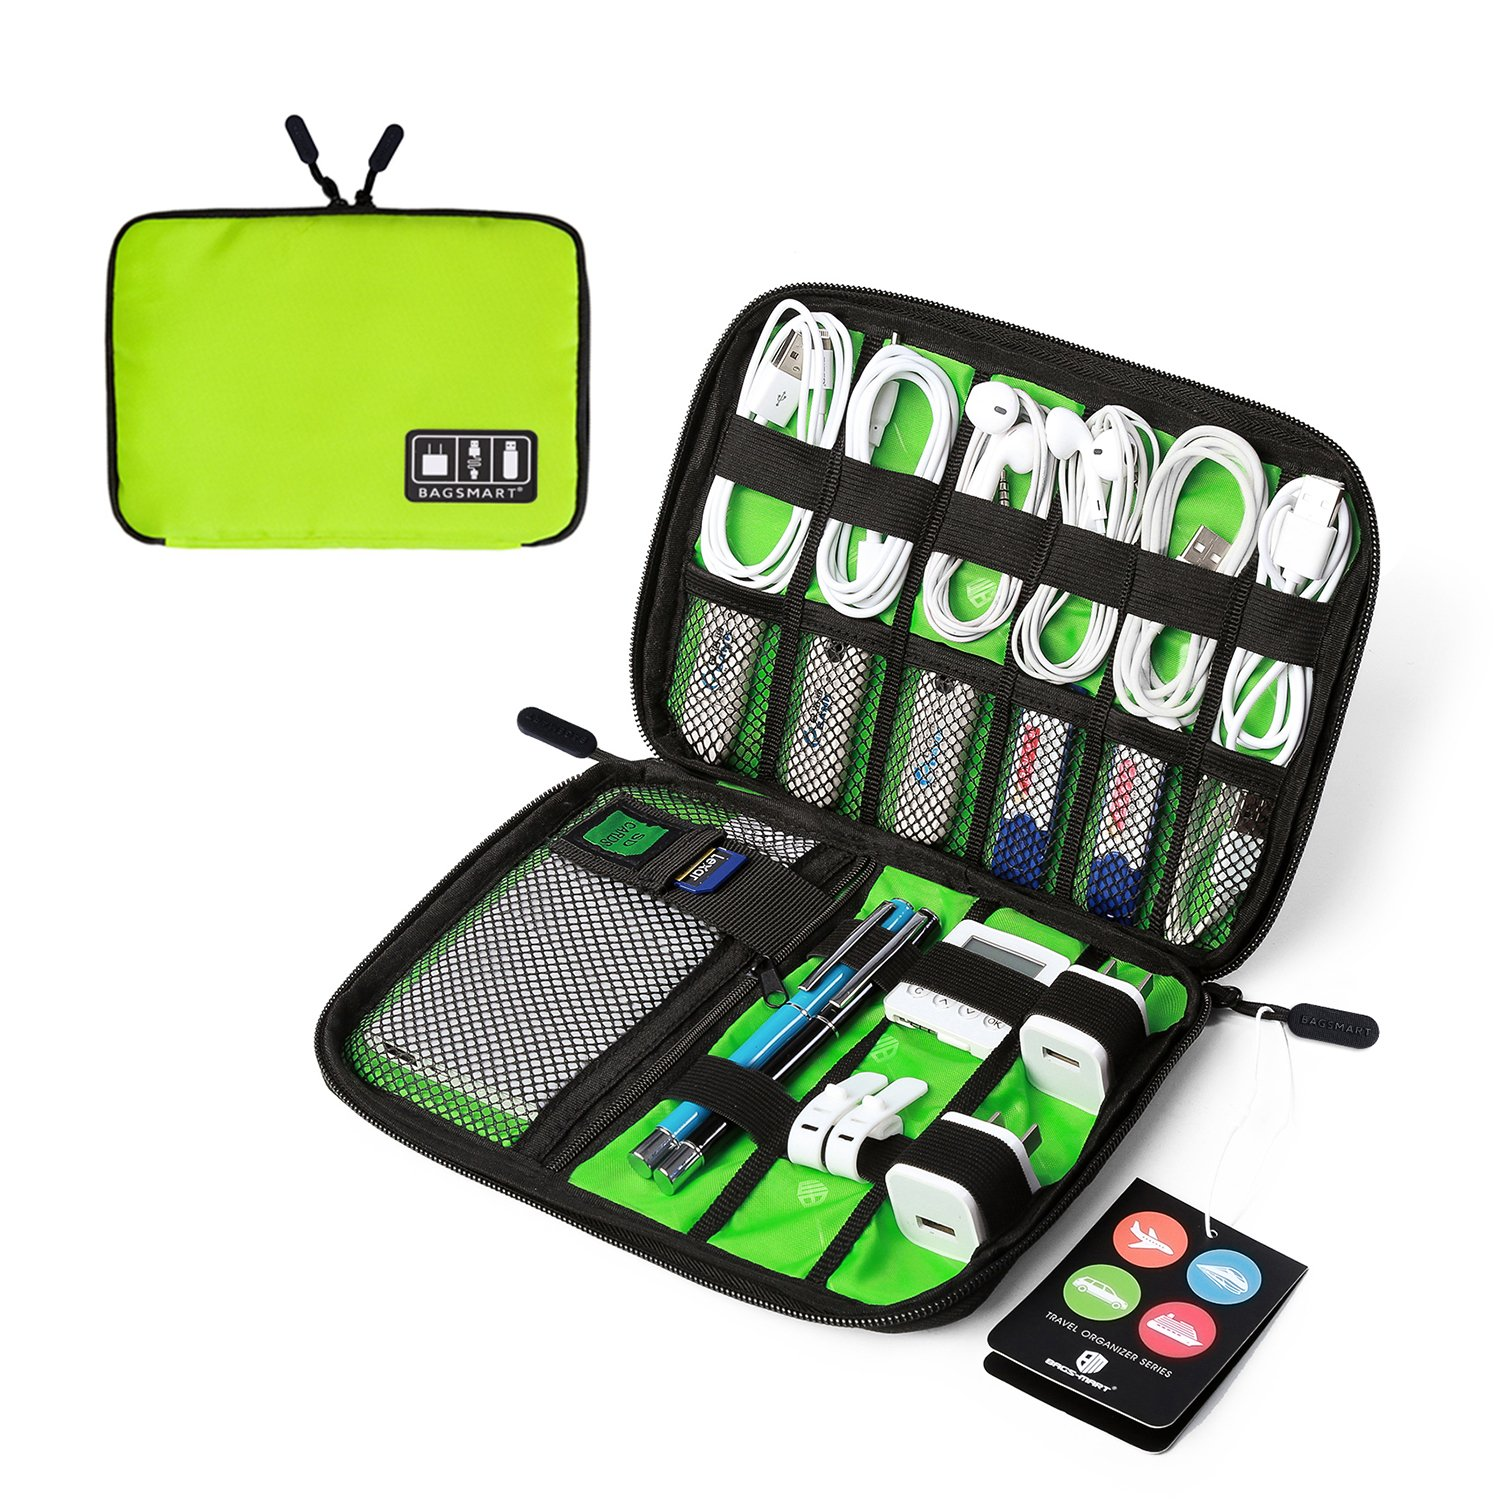 BAGSMART Travel Cable Organizer Portable Electronics Accessories Cases for Hard Drives, Charging Cords, USB Charger, Fluorescent Green